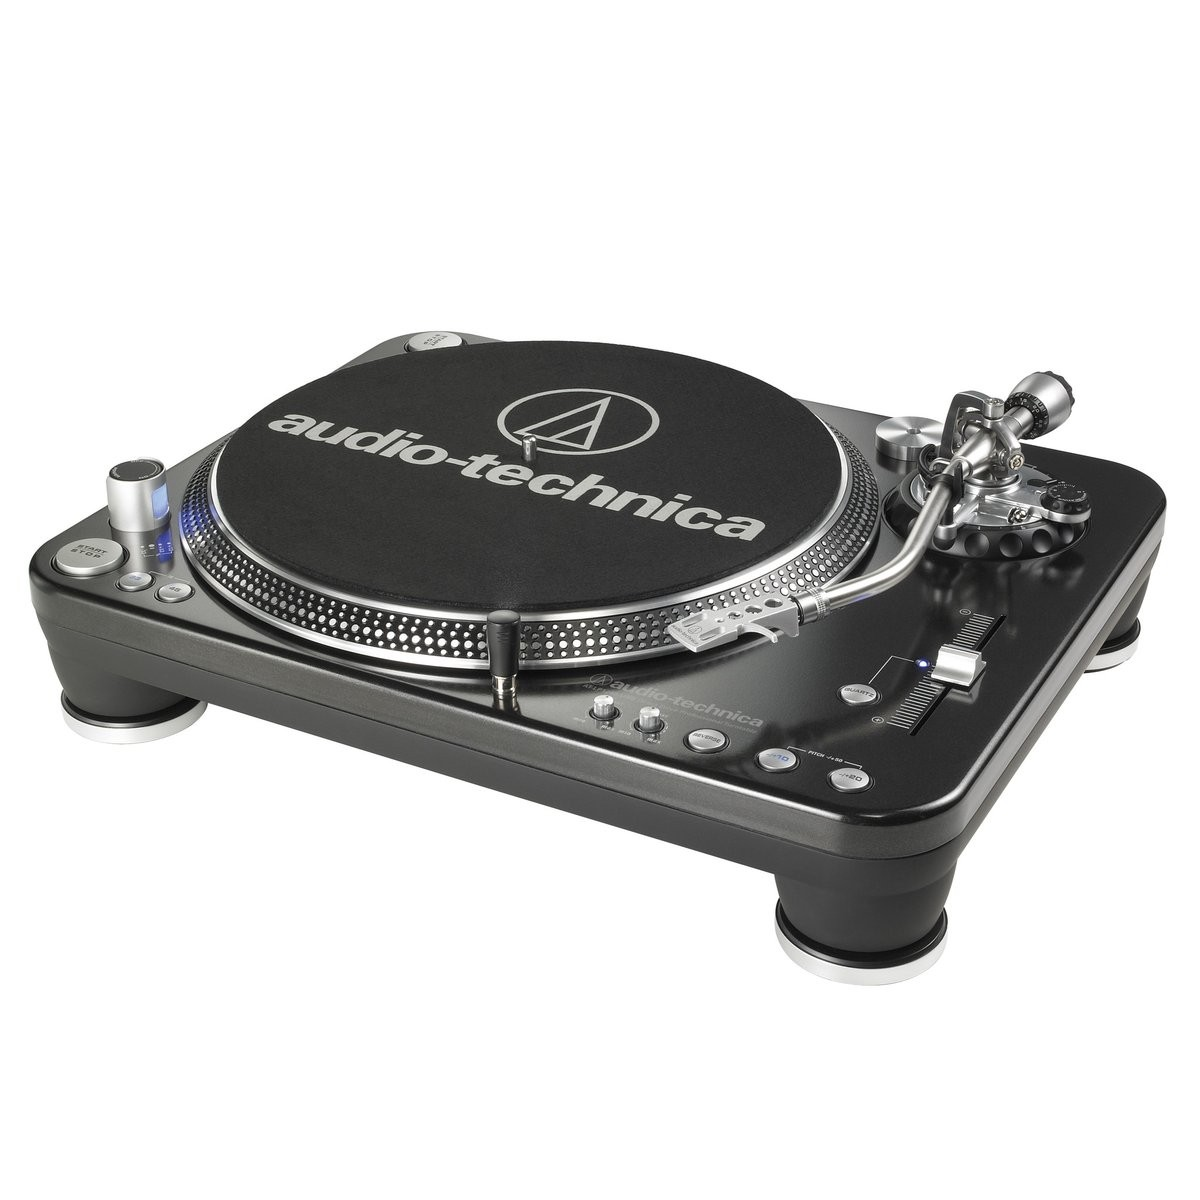 Audio Technica - LP-1240-USB Pro DJ Turntable